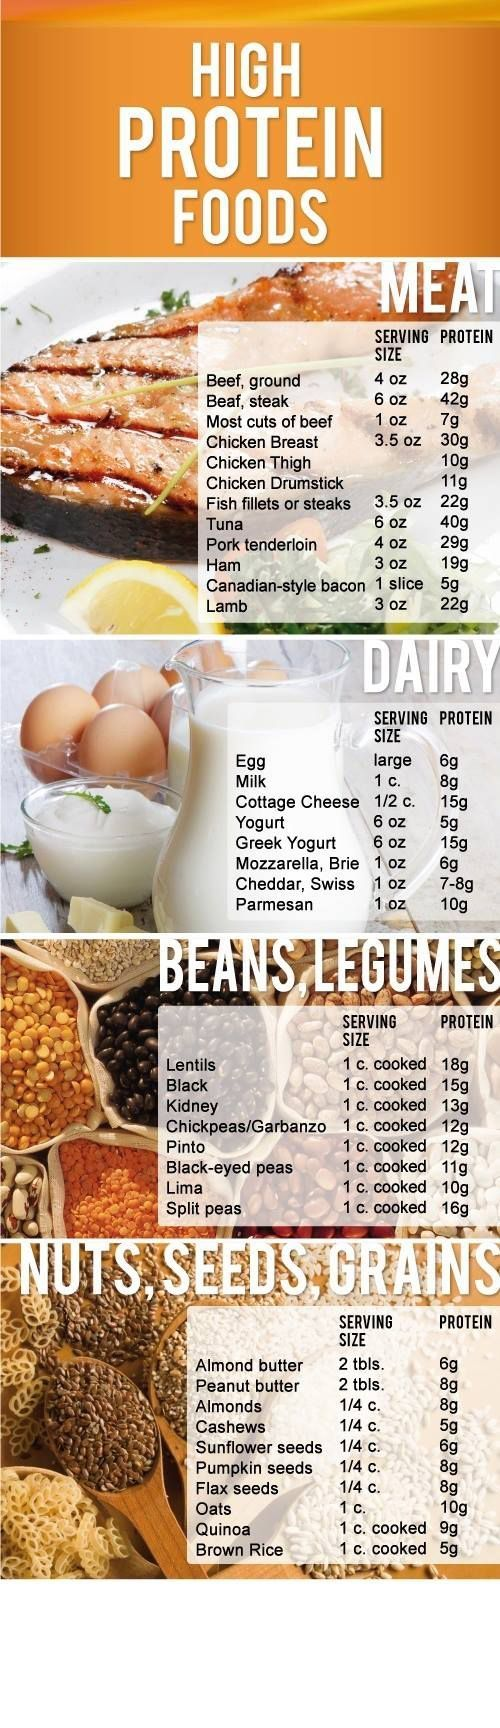 High protein foods #protein by scvidrine